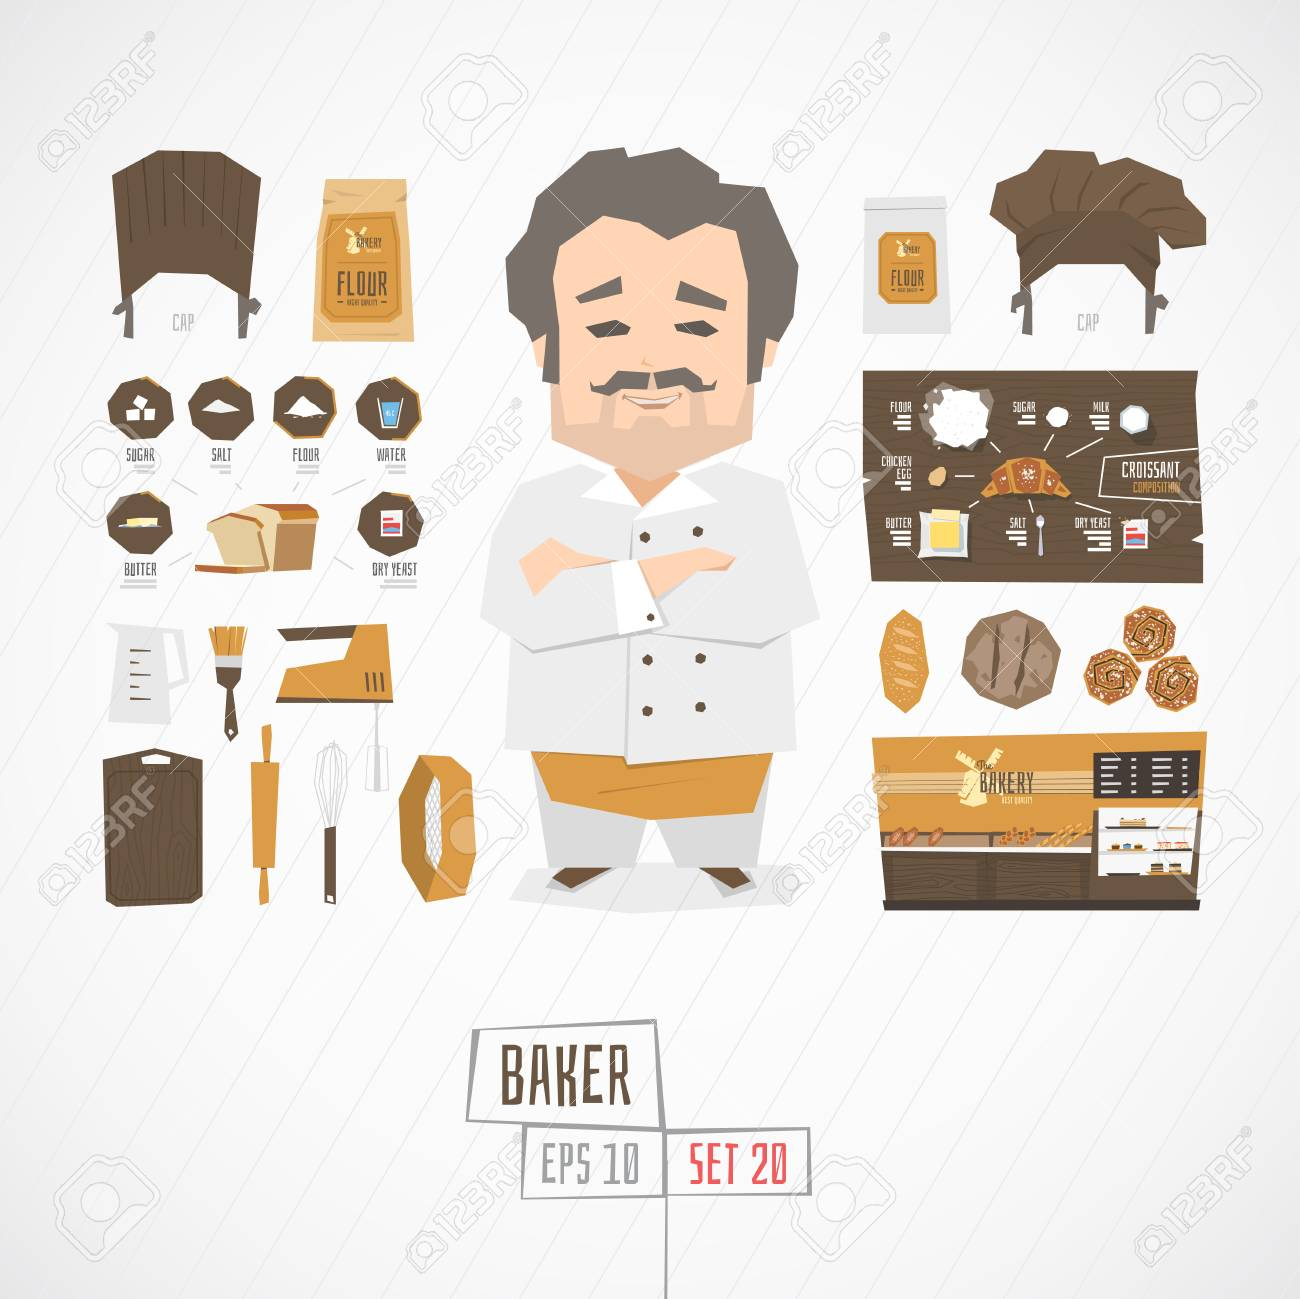 Flat funny charatcer baker set with icons and infographic - 52148100